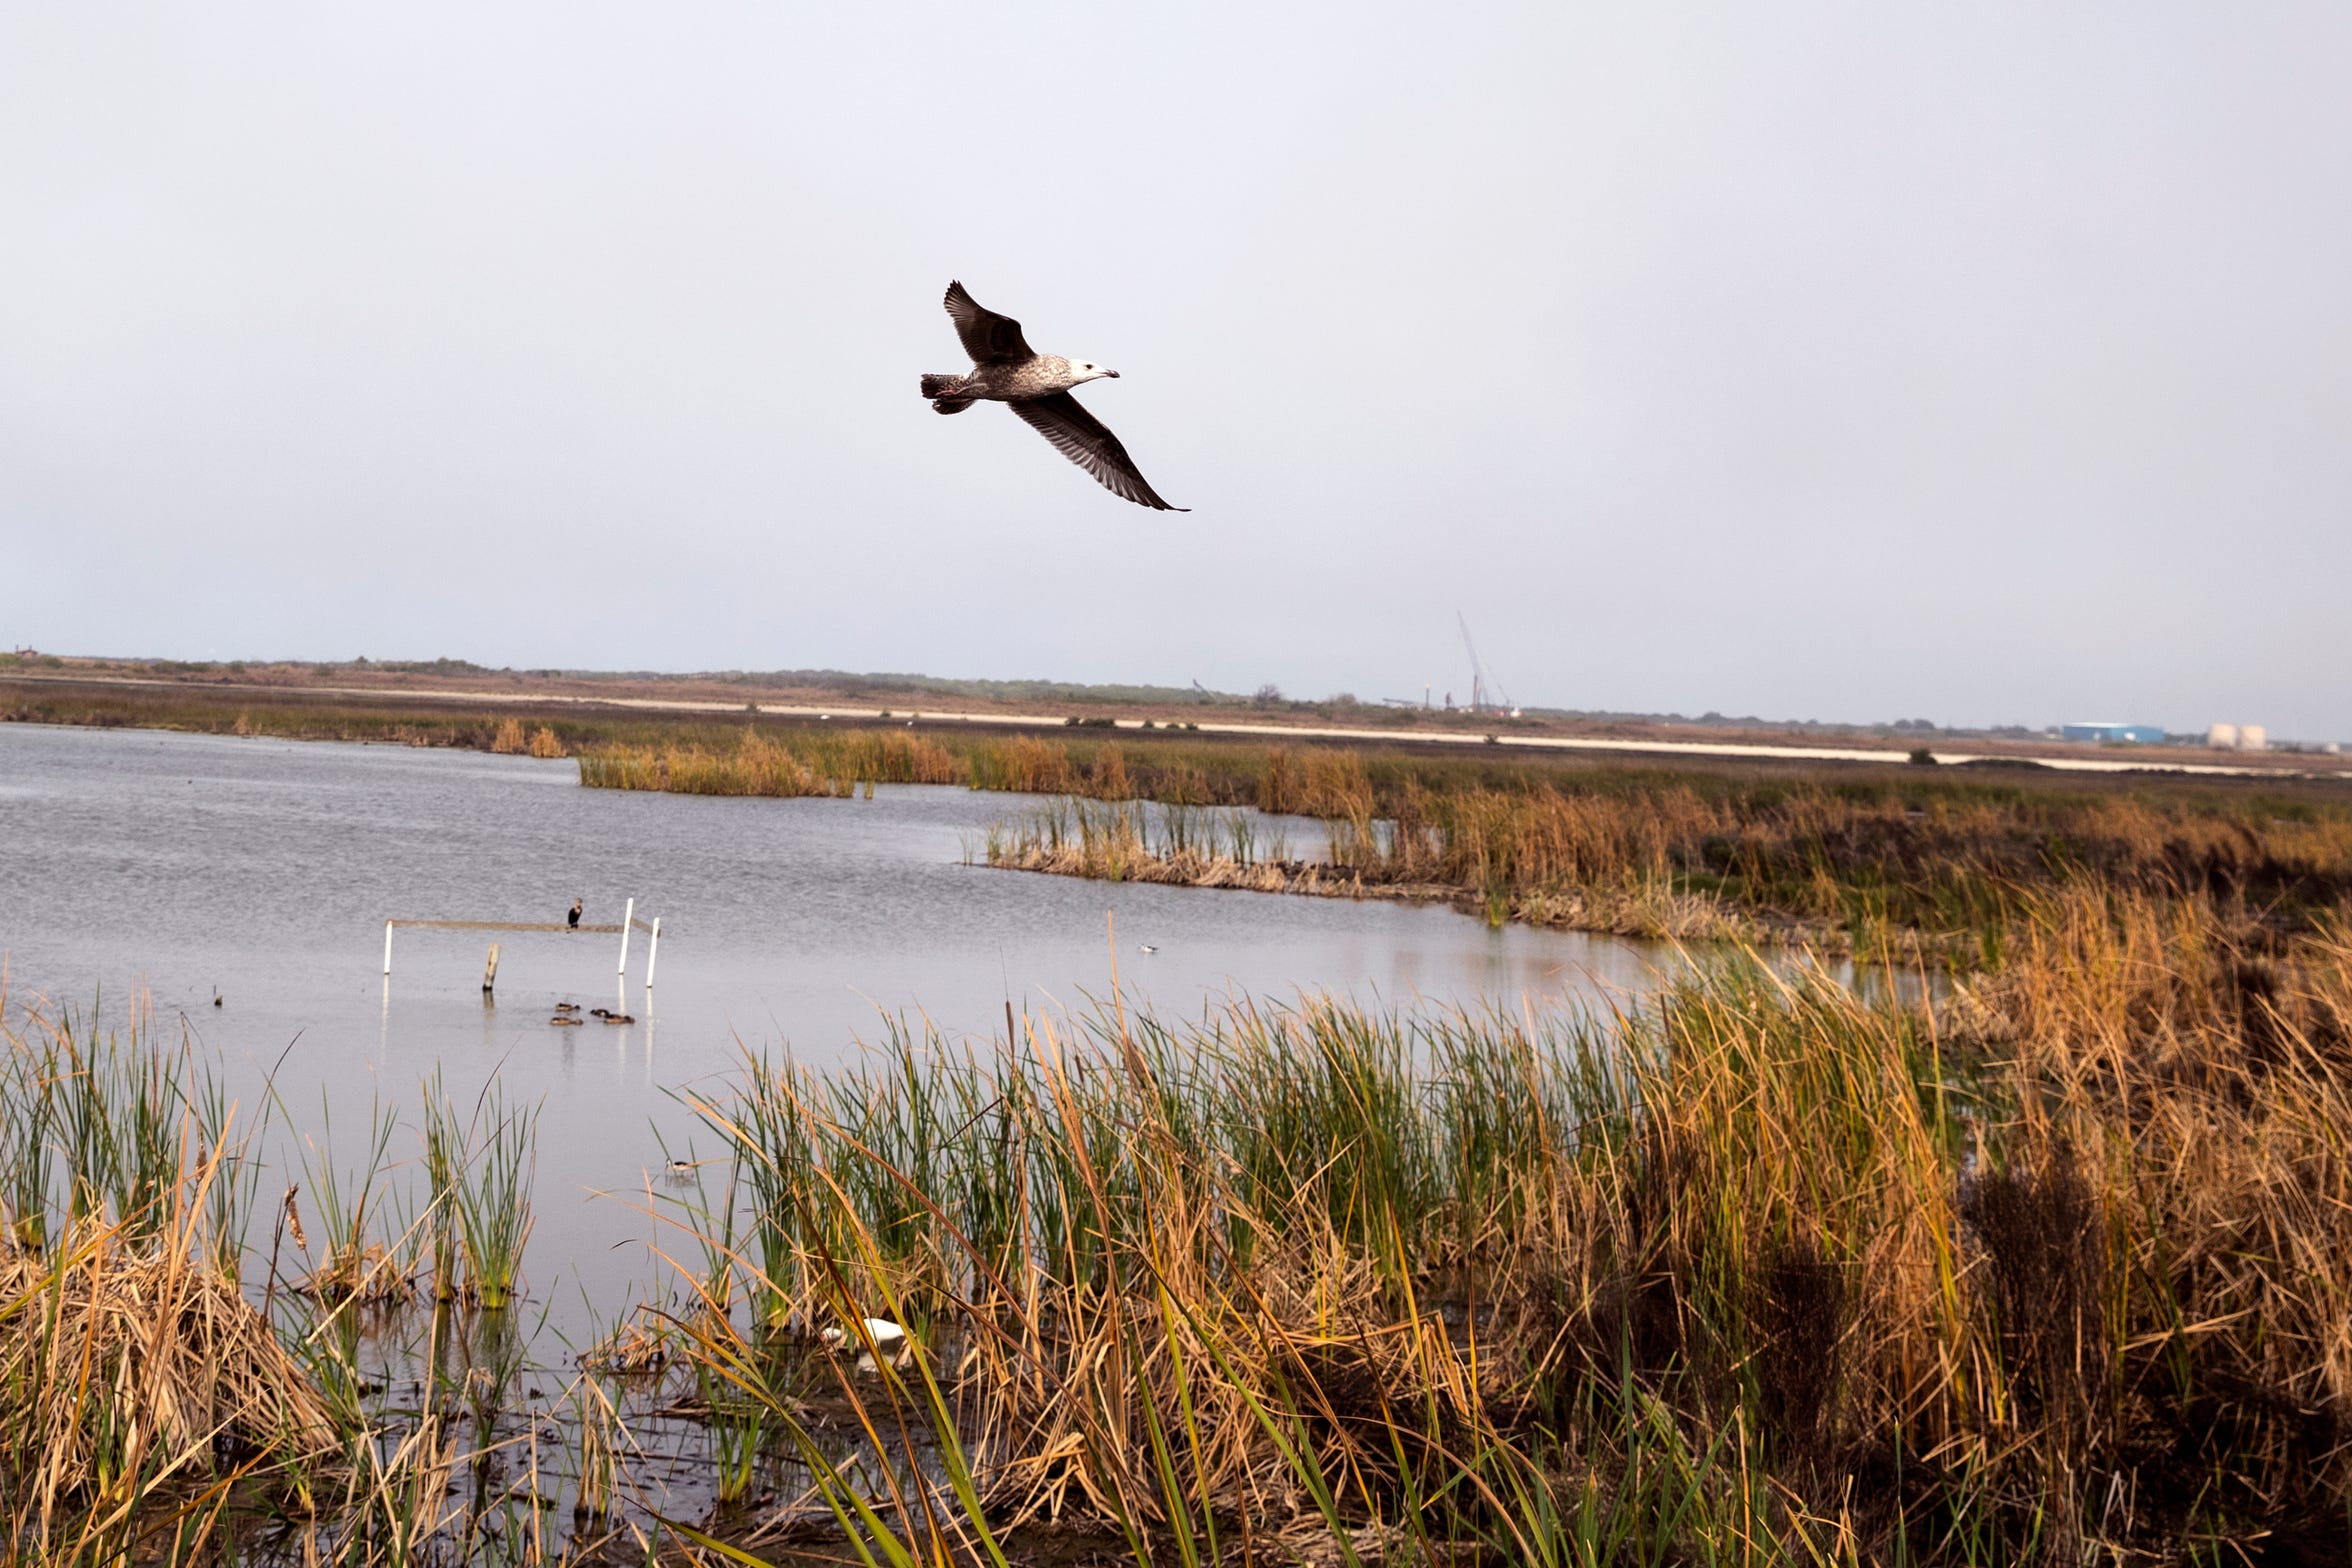 A variety of birds can be seen at the Leonabelle Turnbull Birding Center in Port Aransas. It is located at 1356 Ross Avenue, adjacent to the Nueces County Water Treatment Facility.